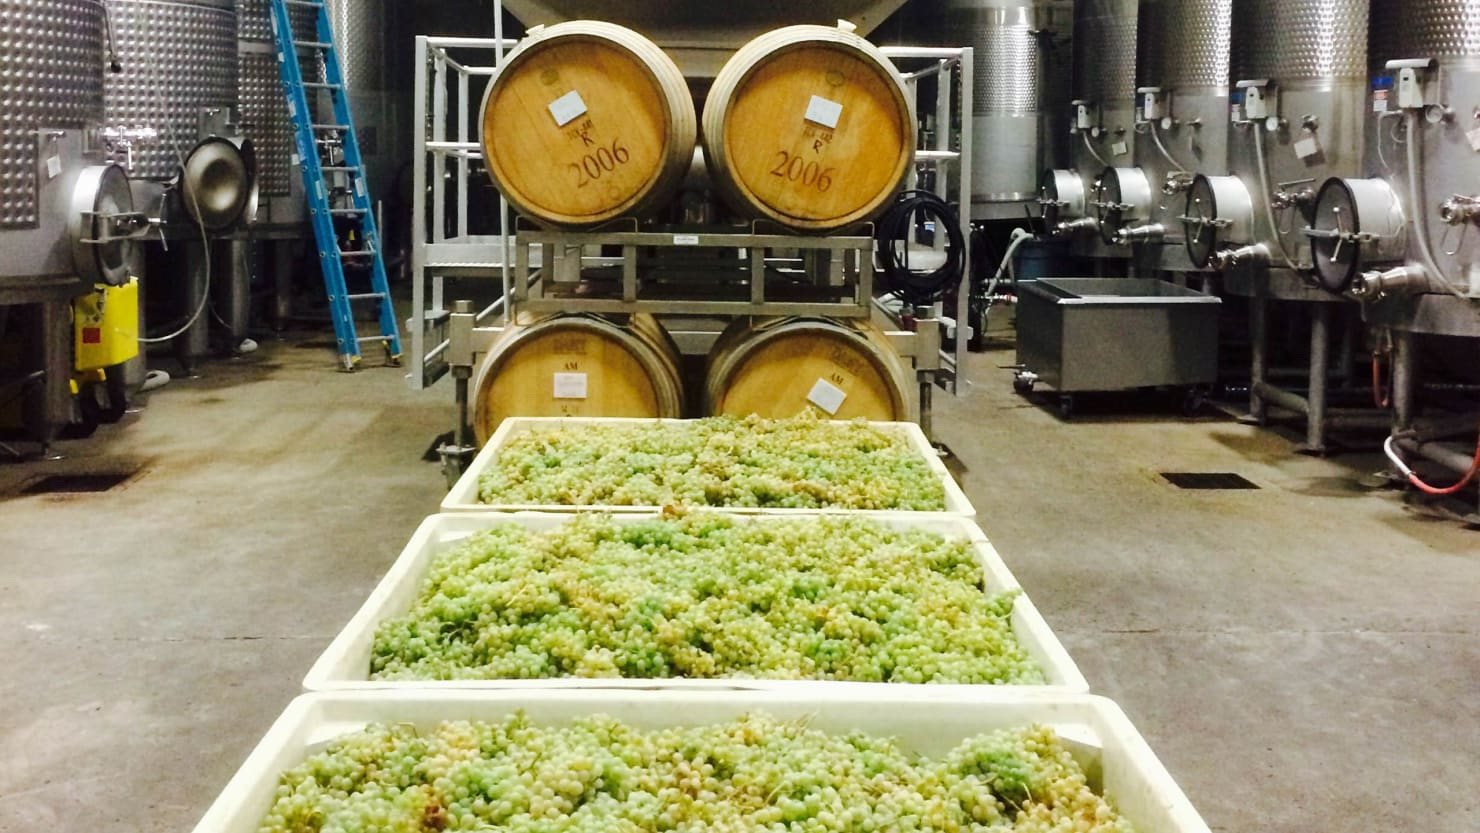 Move Over Chardonnay: Is Picardan the Next Great White Wine?